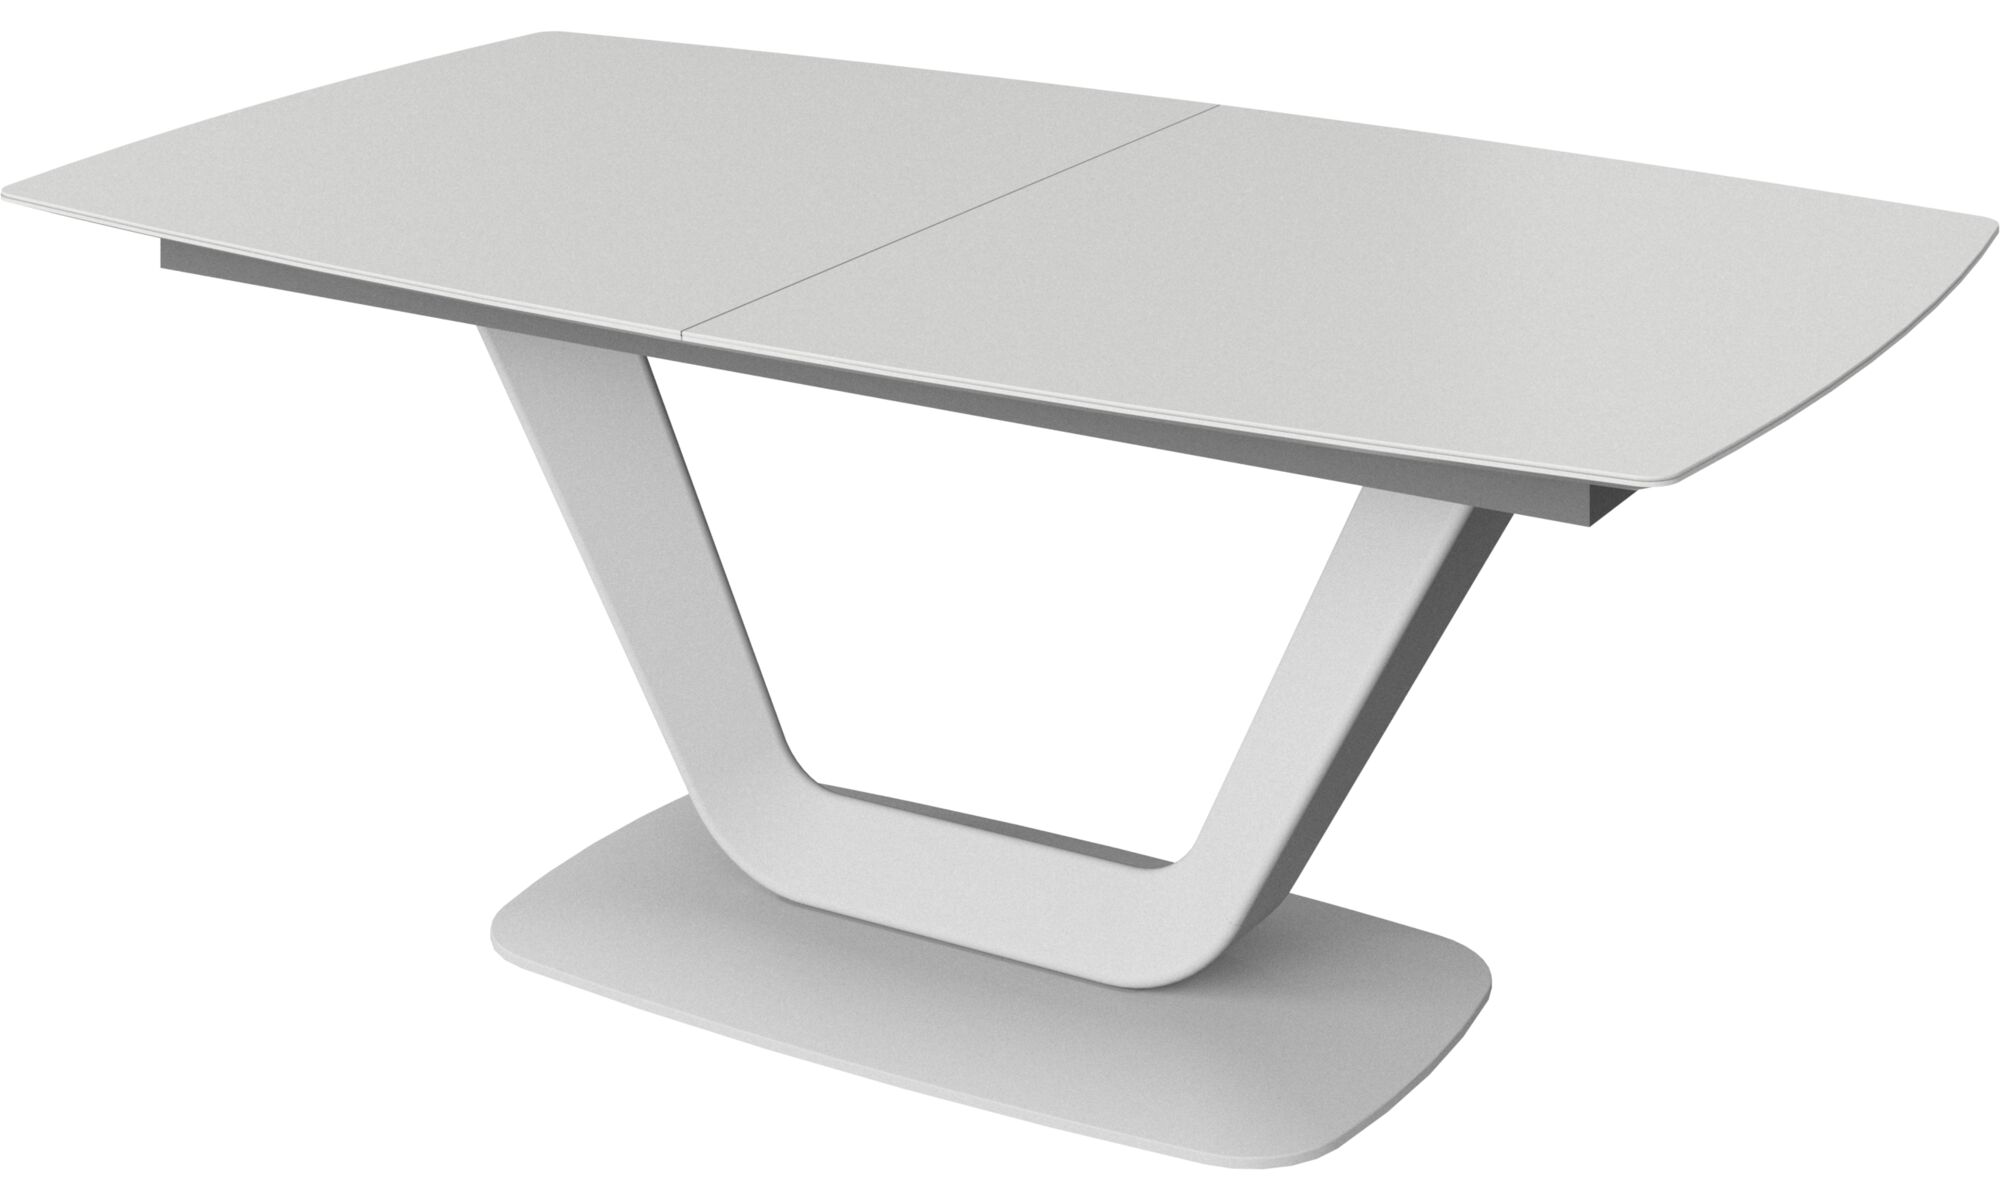 Fabulous Dining Tables Alicante Table With Supplementary Tabletop Ncnpc Chair Design For Home Ncnpcorg